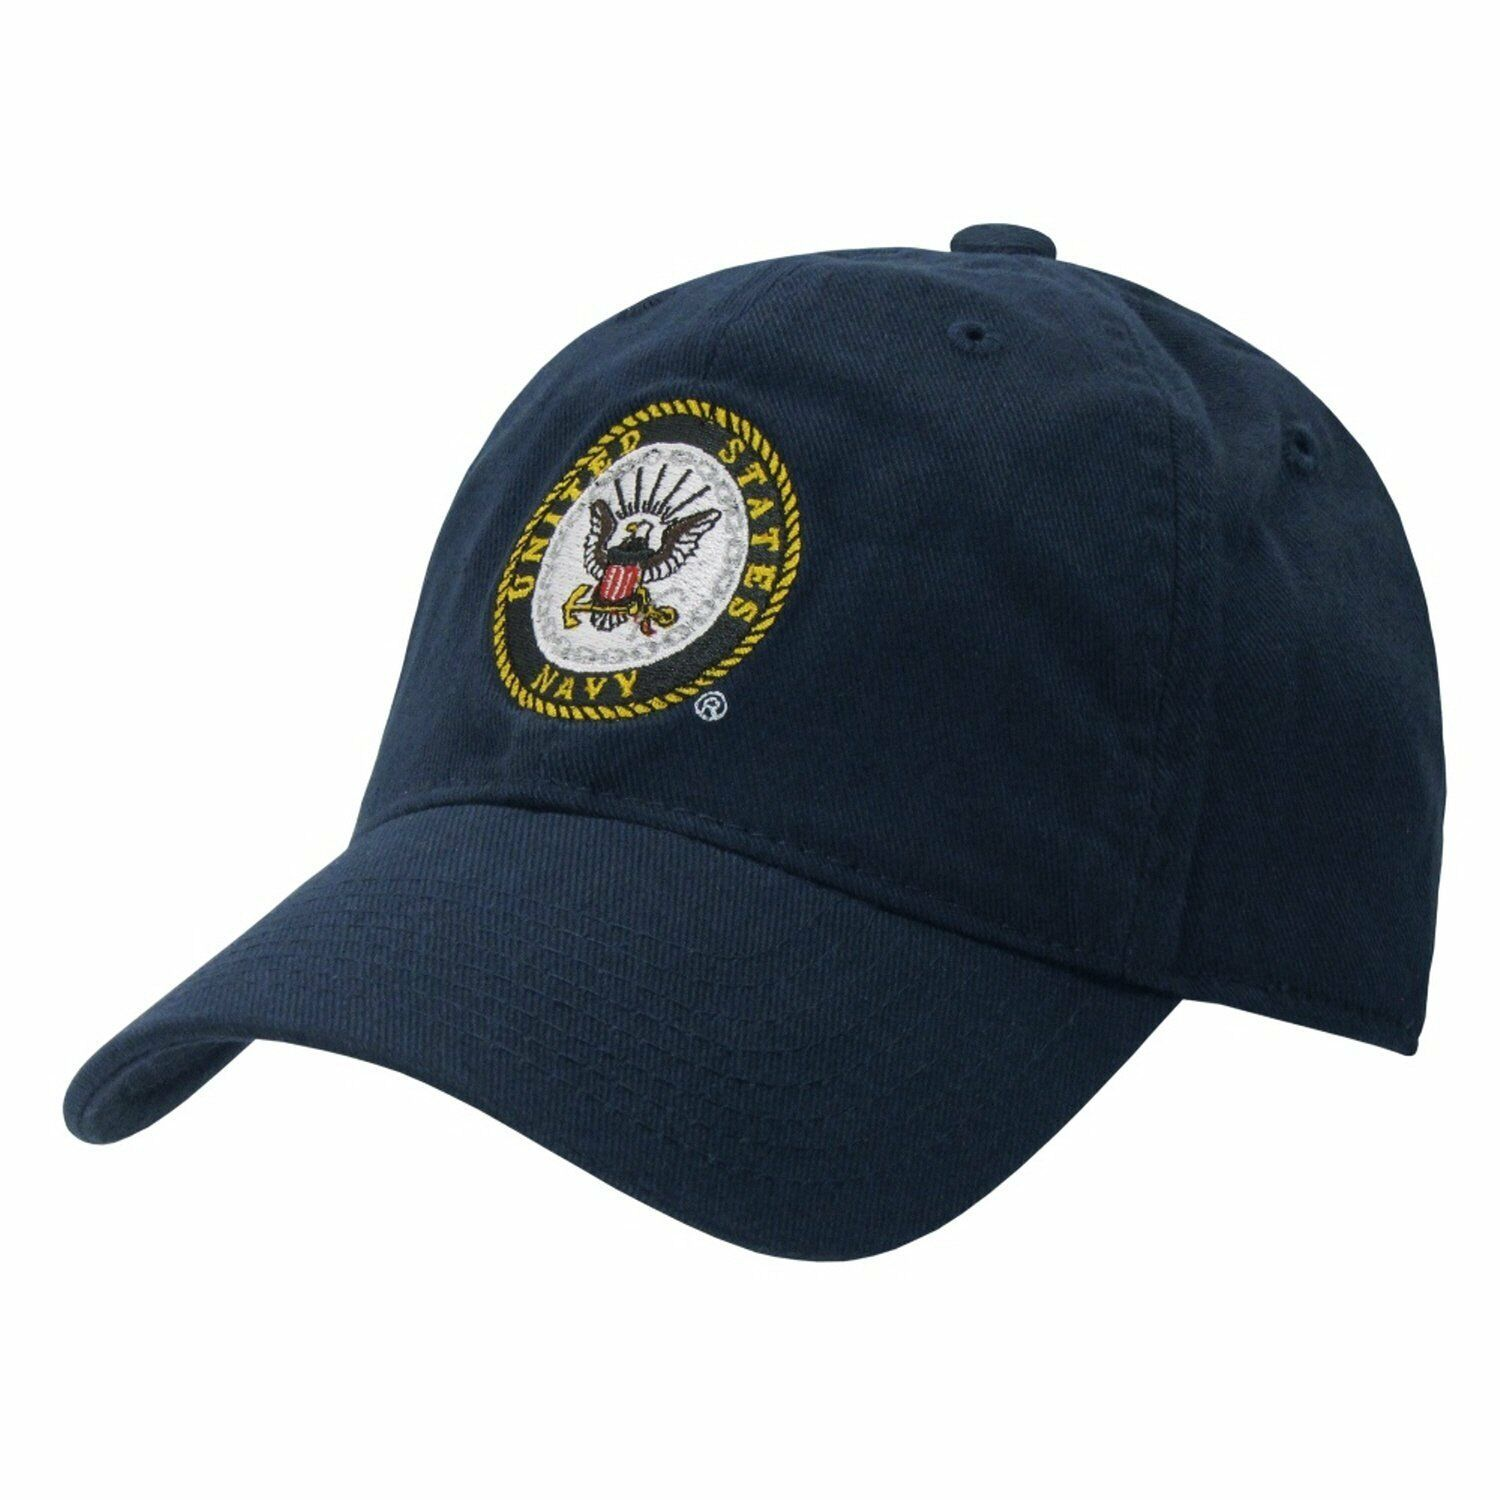 navy blue united states us navy baseball cap caps hat hats